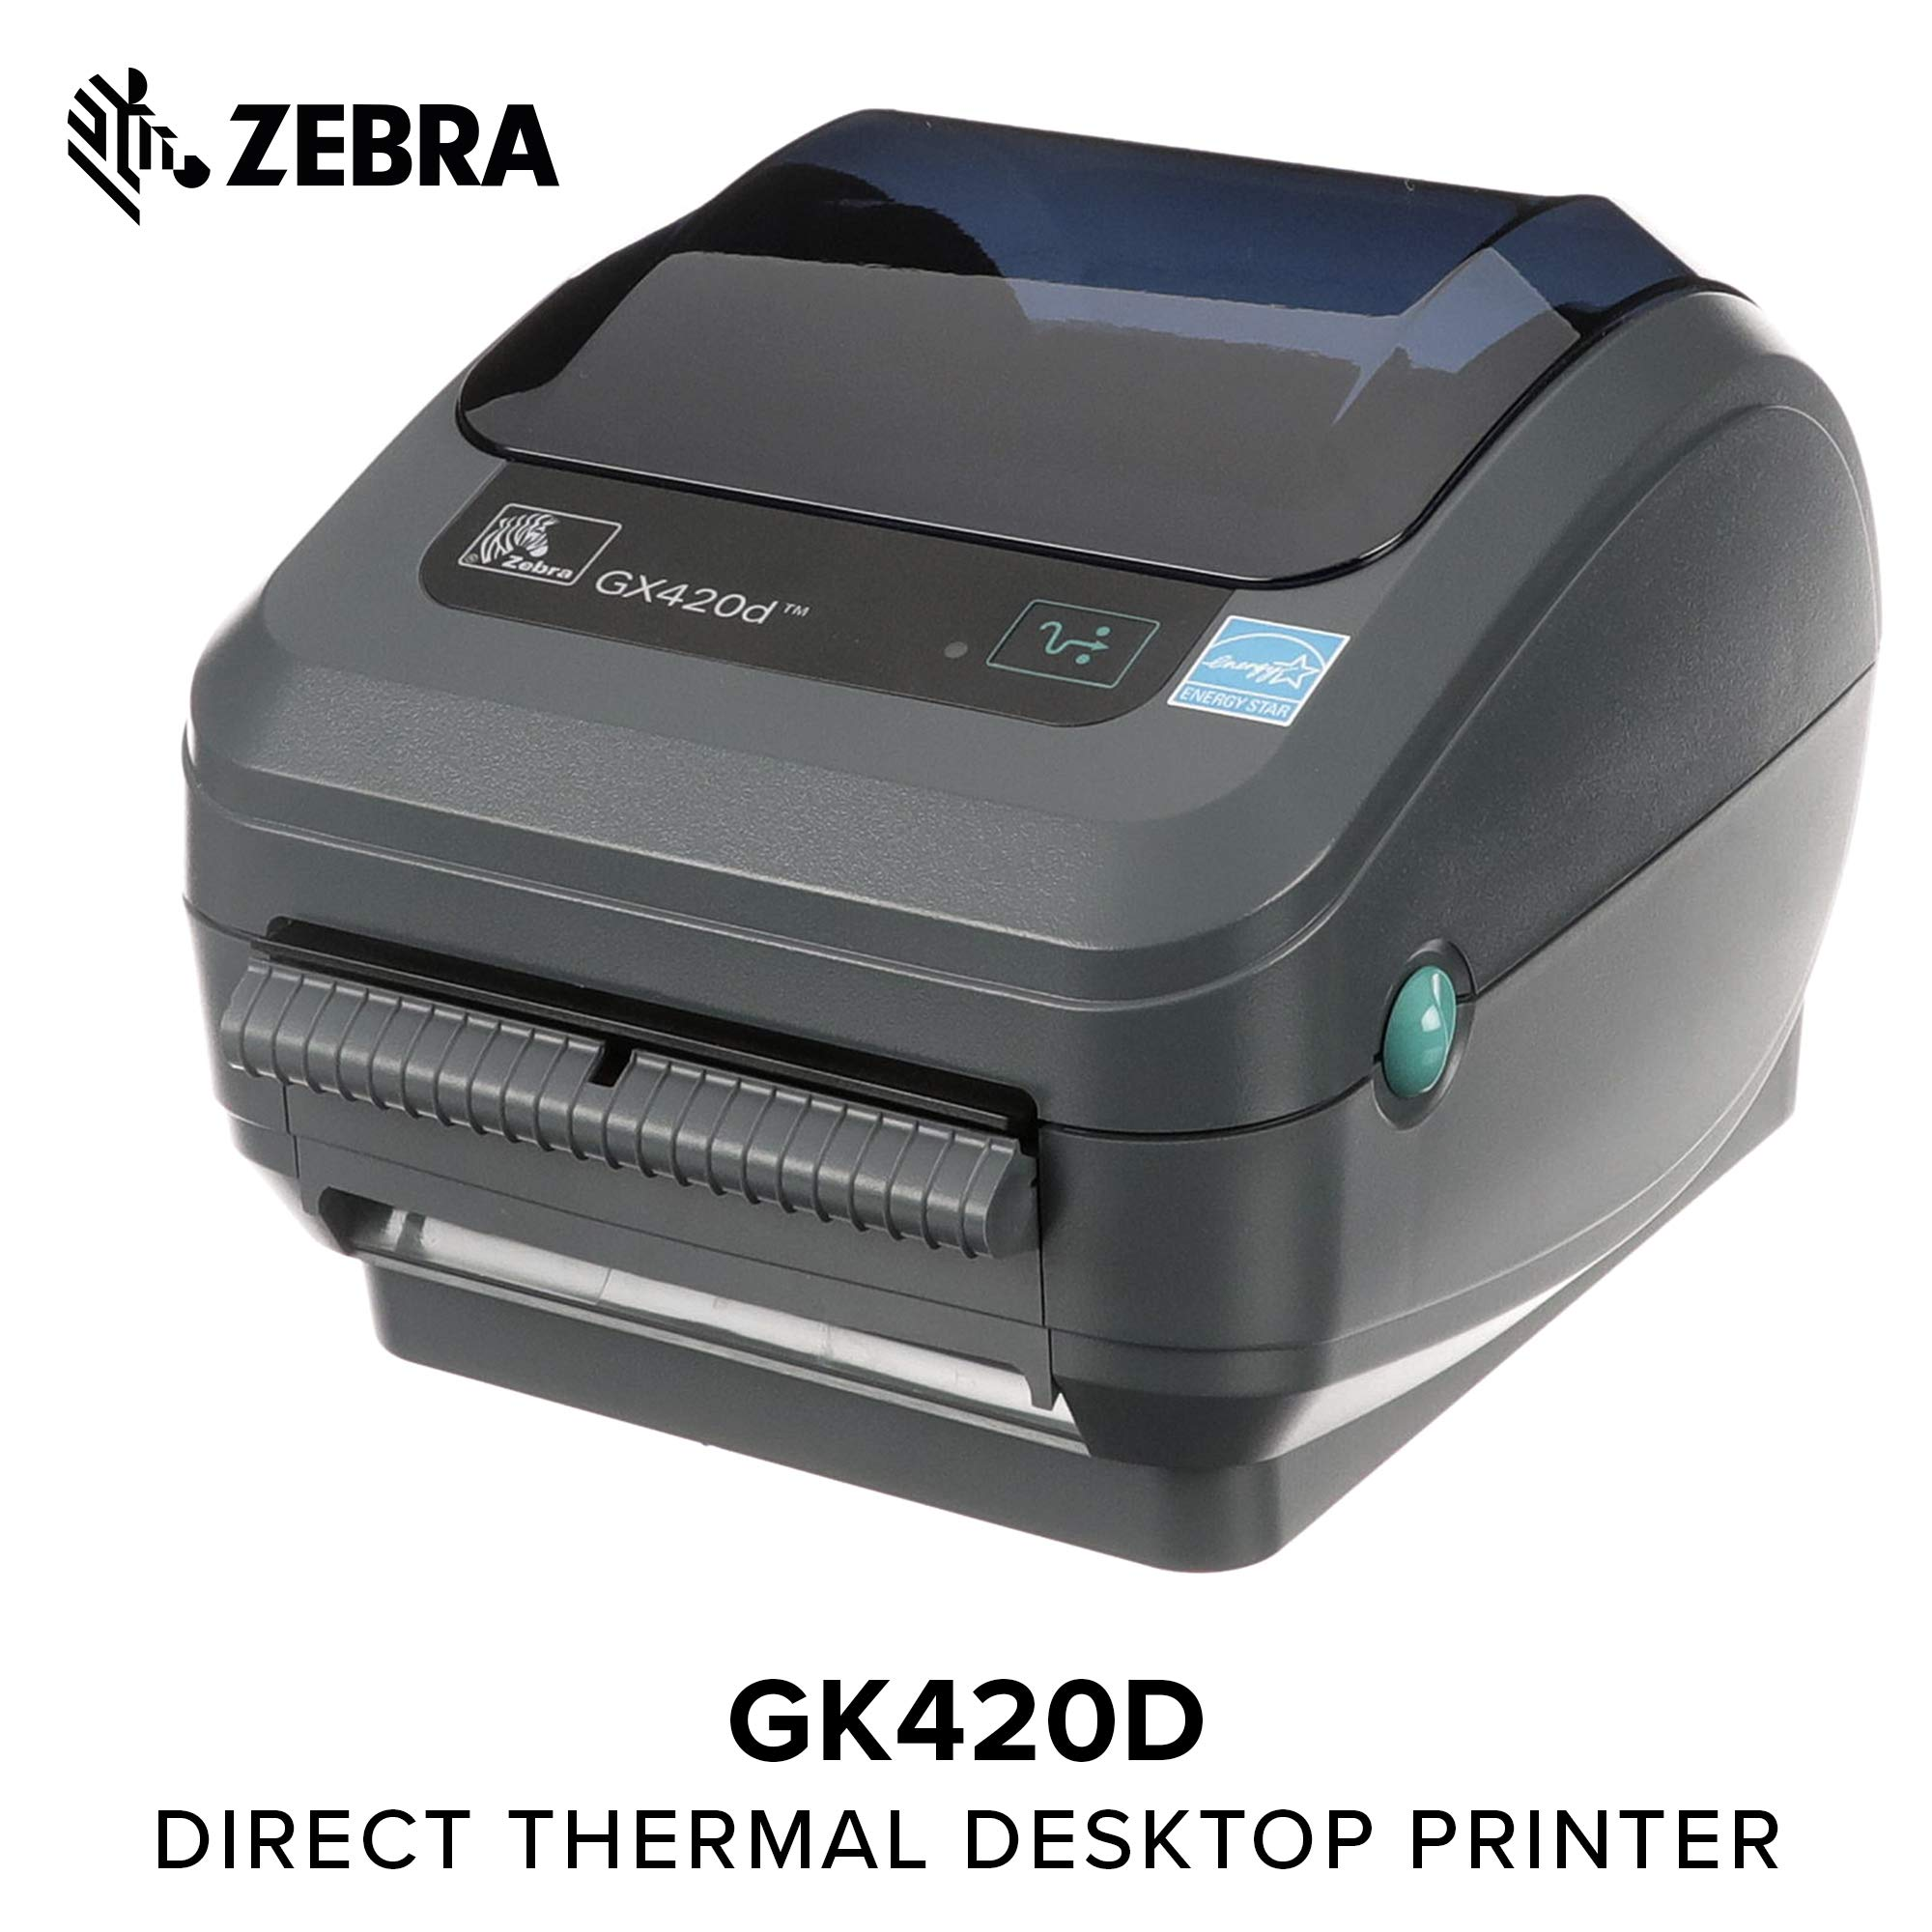 Zebra - GX420d Direct Thermal Desktop Printer for Labels, Receipts, Barcodes, Tags, and Wrist Bands - Print Width of 4 in - USB, Serial, and Ethernet Port Connectivity (Includes Peeler) by ZEBRA (Image #1)